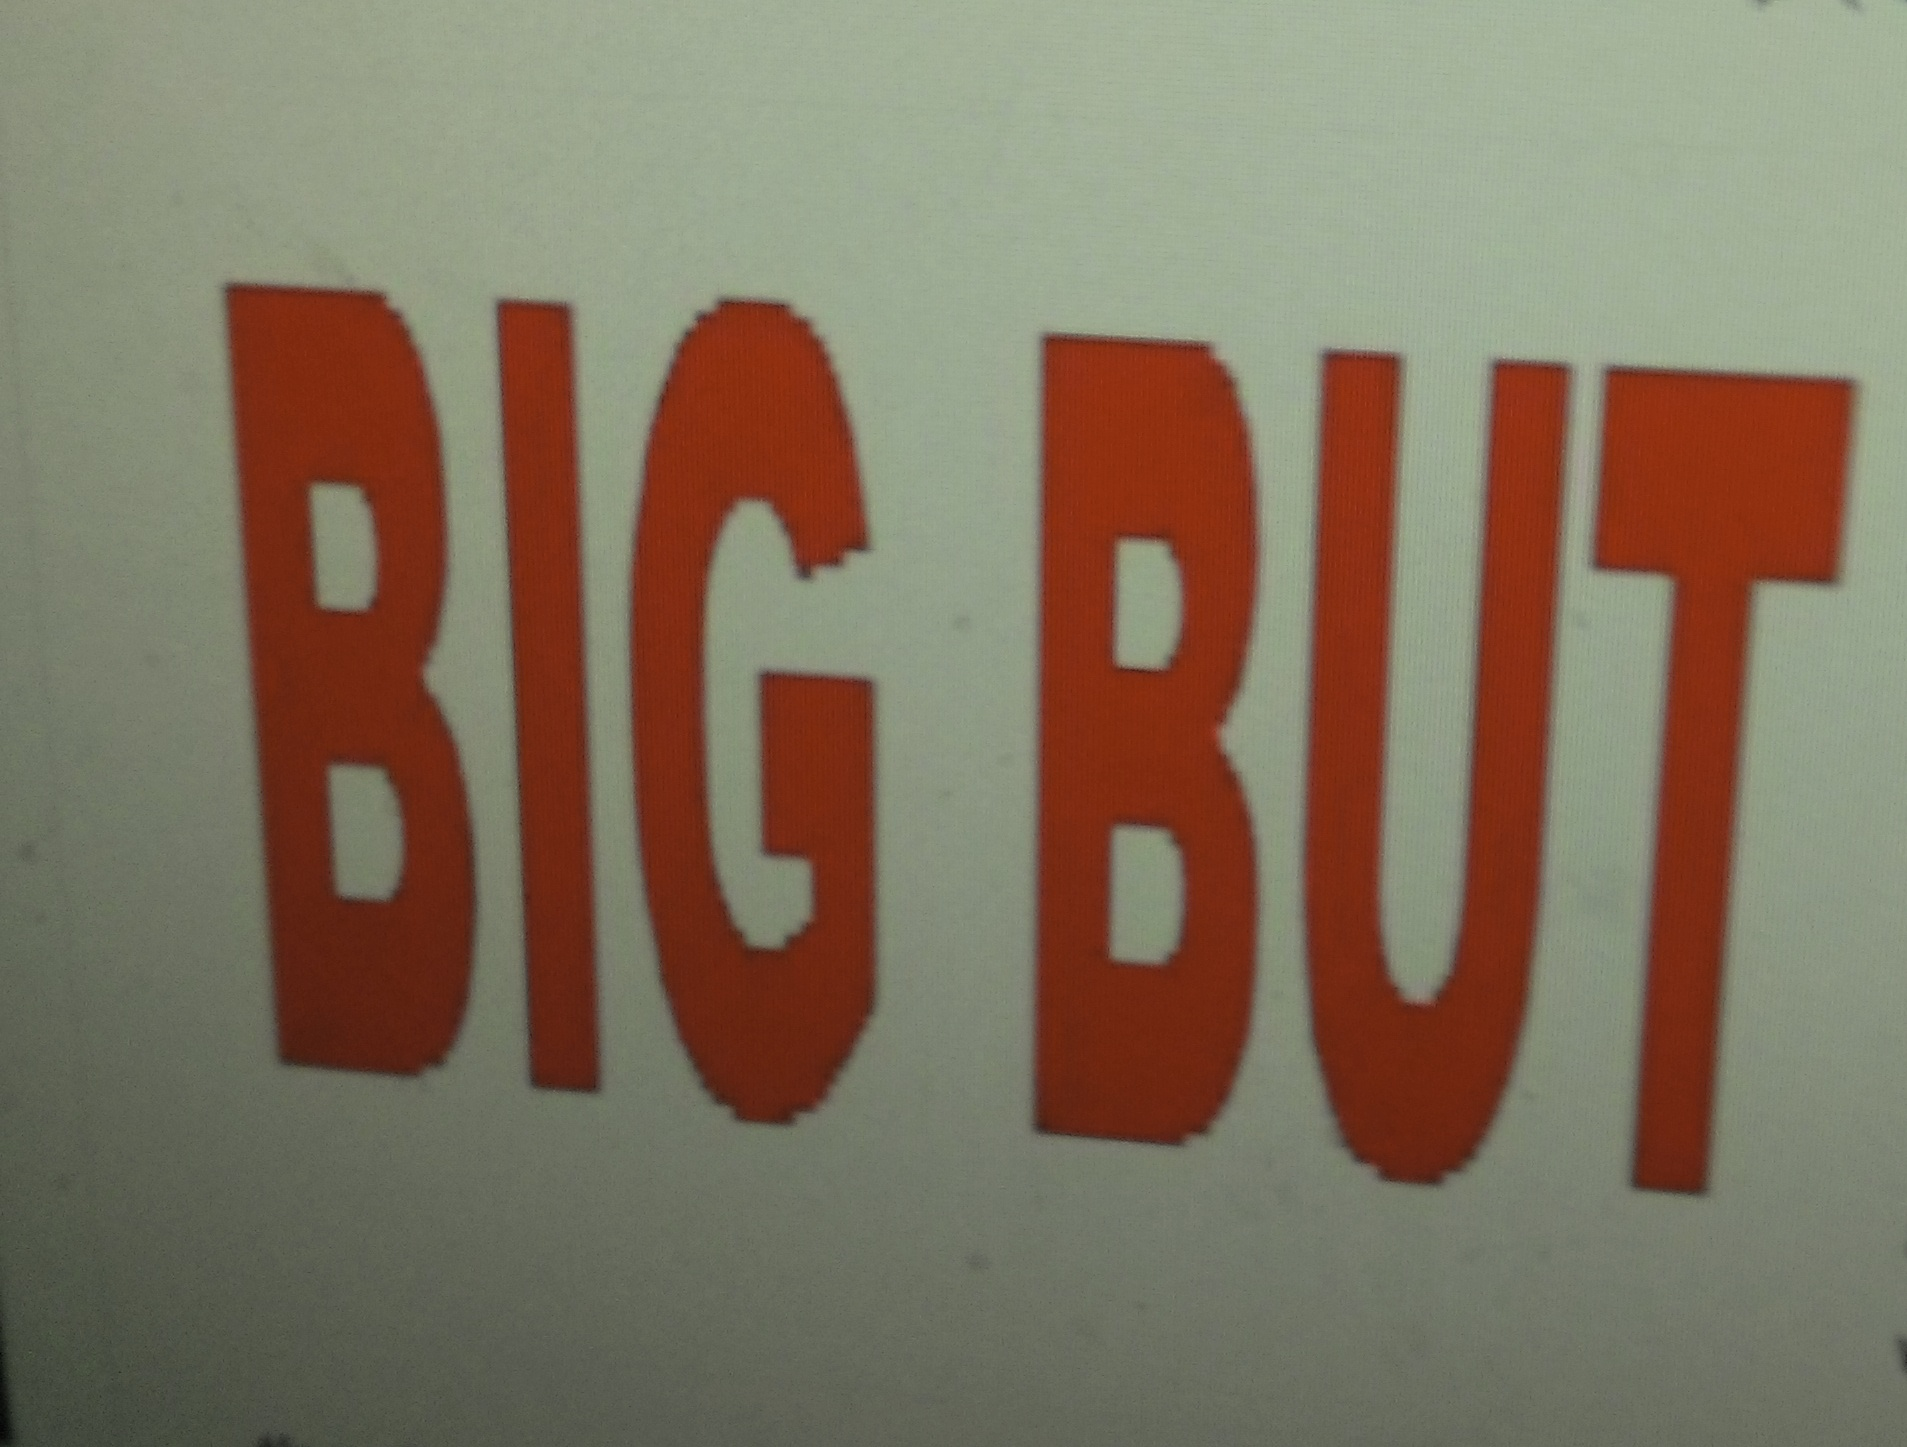 big but words